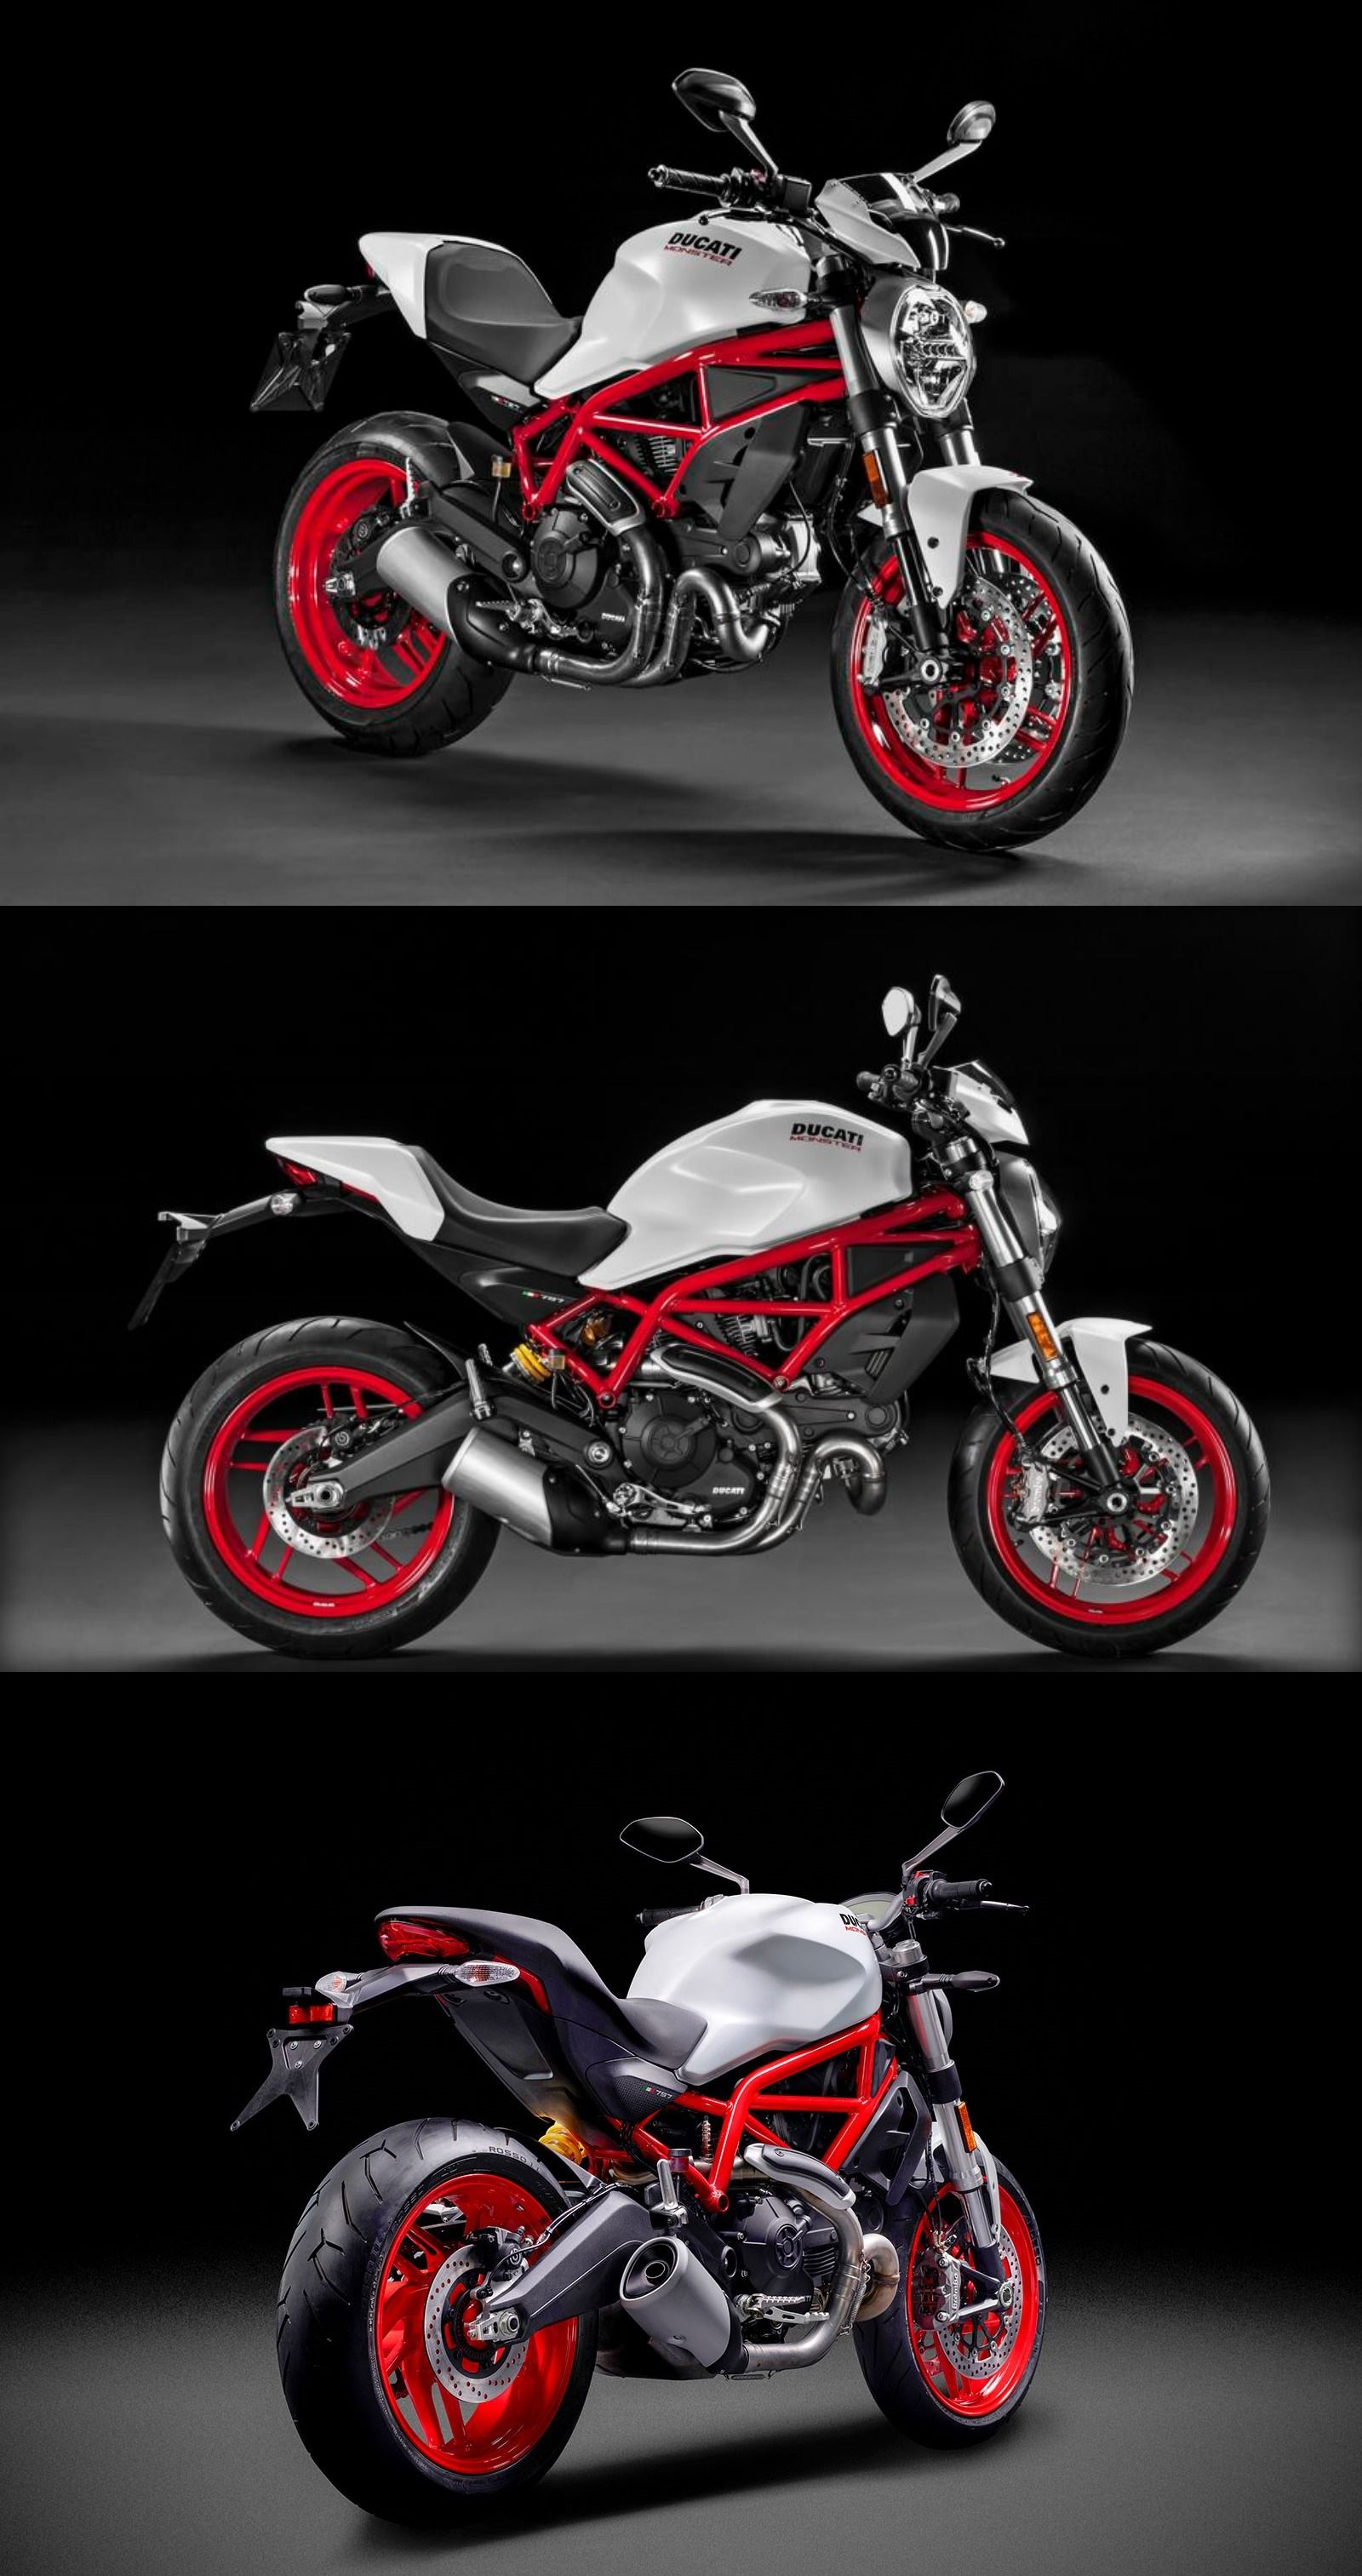 Ducati Multistrada 950 And Monster 797 Launched In India Bikes